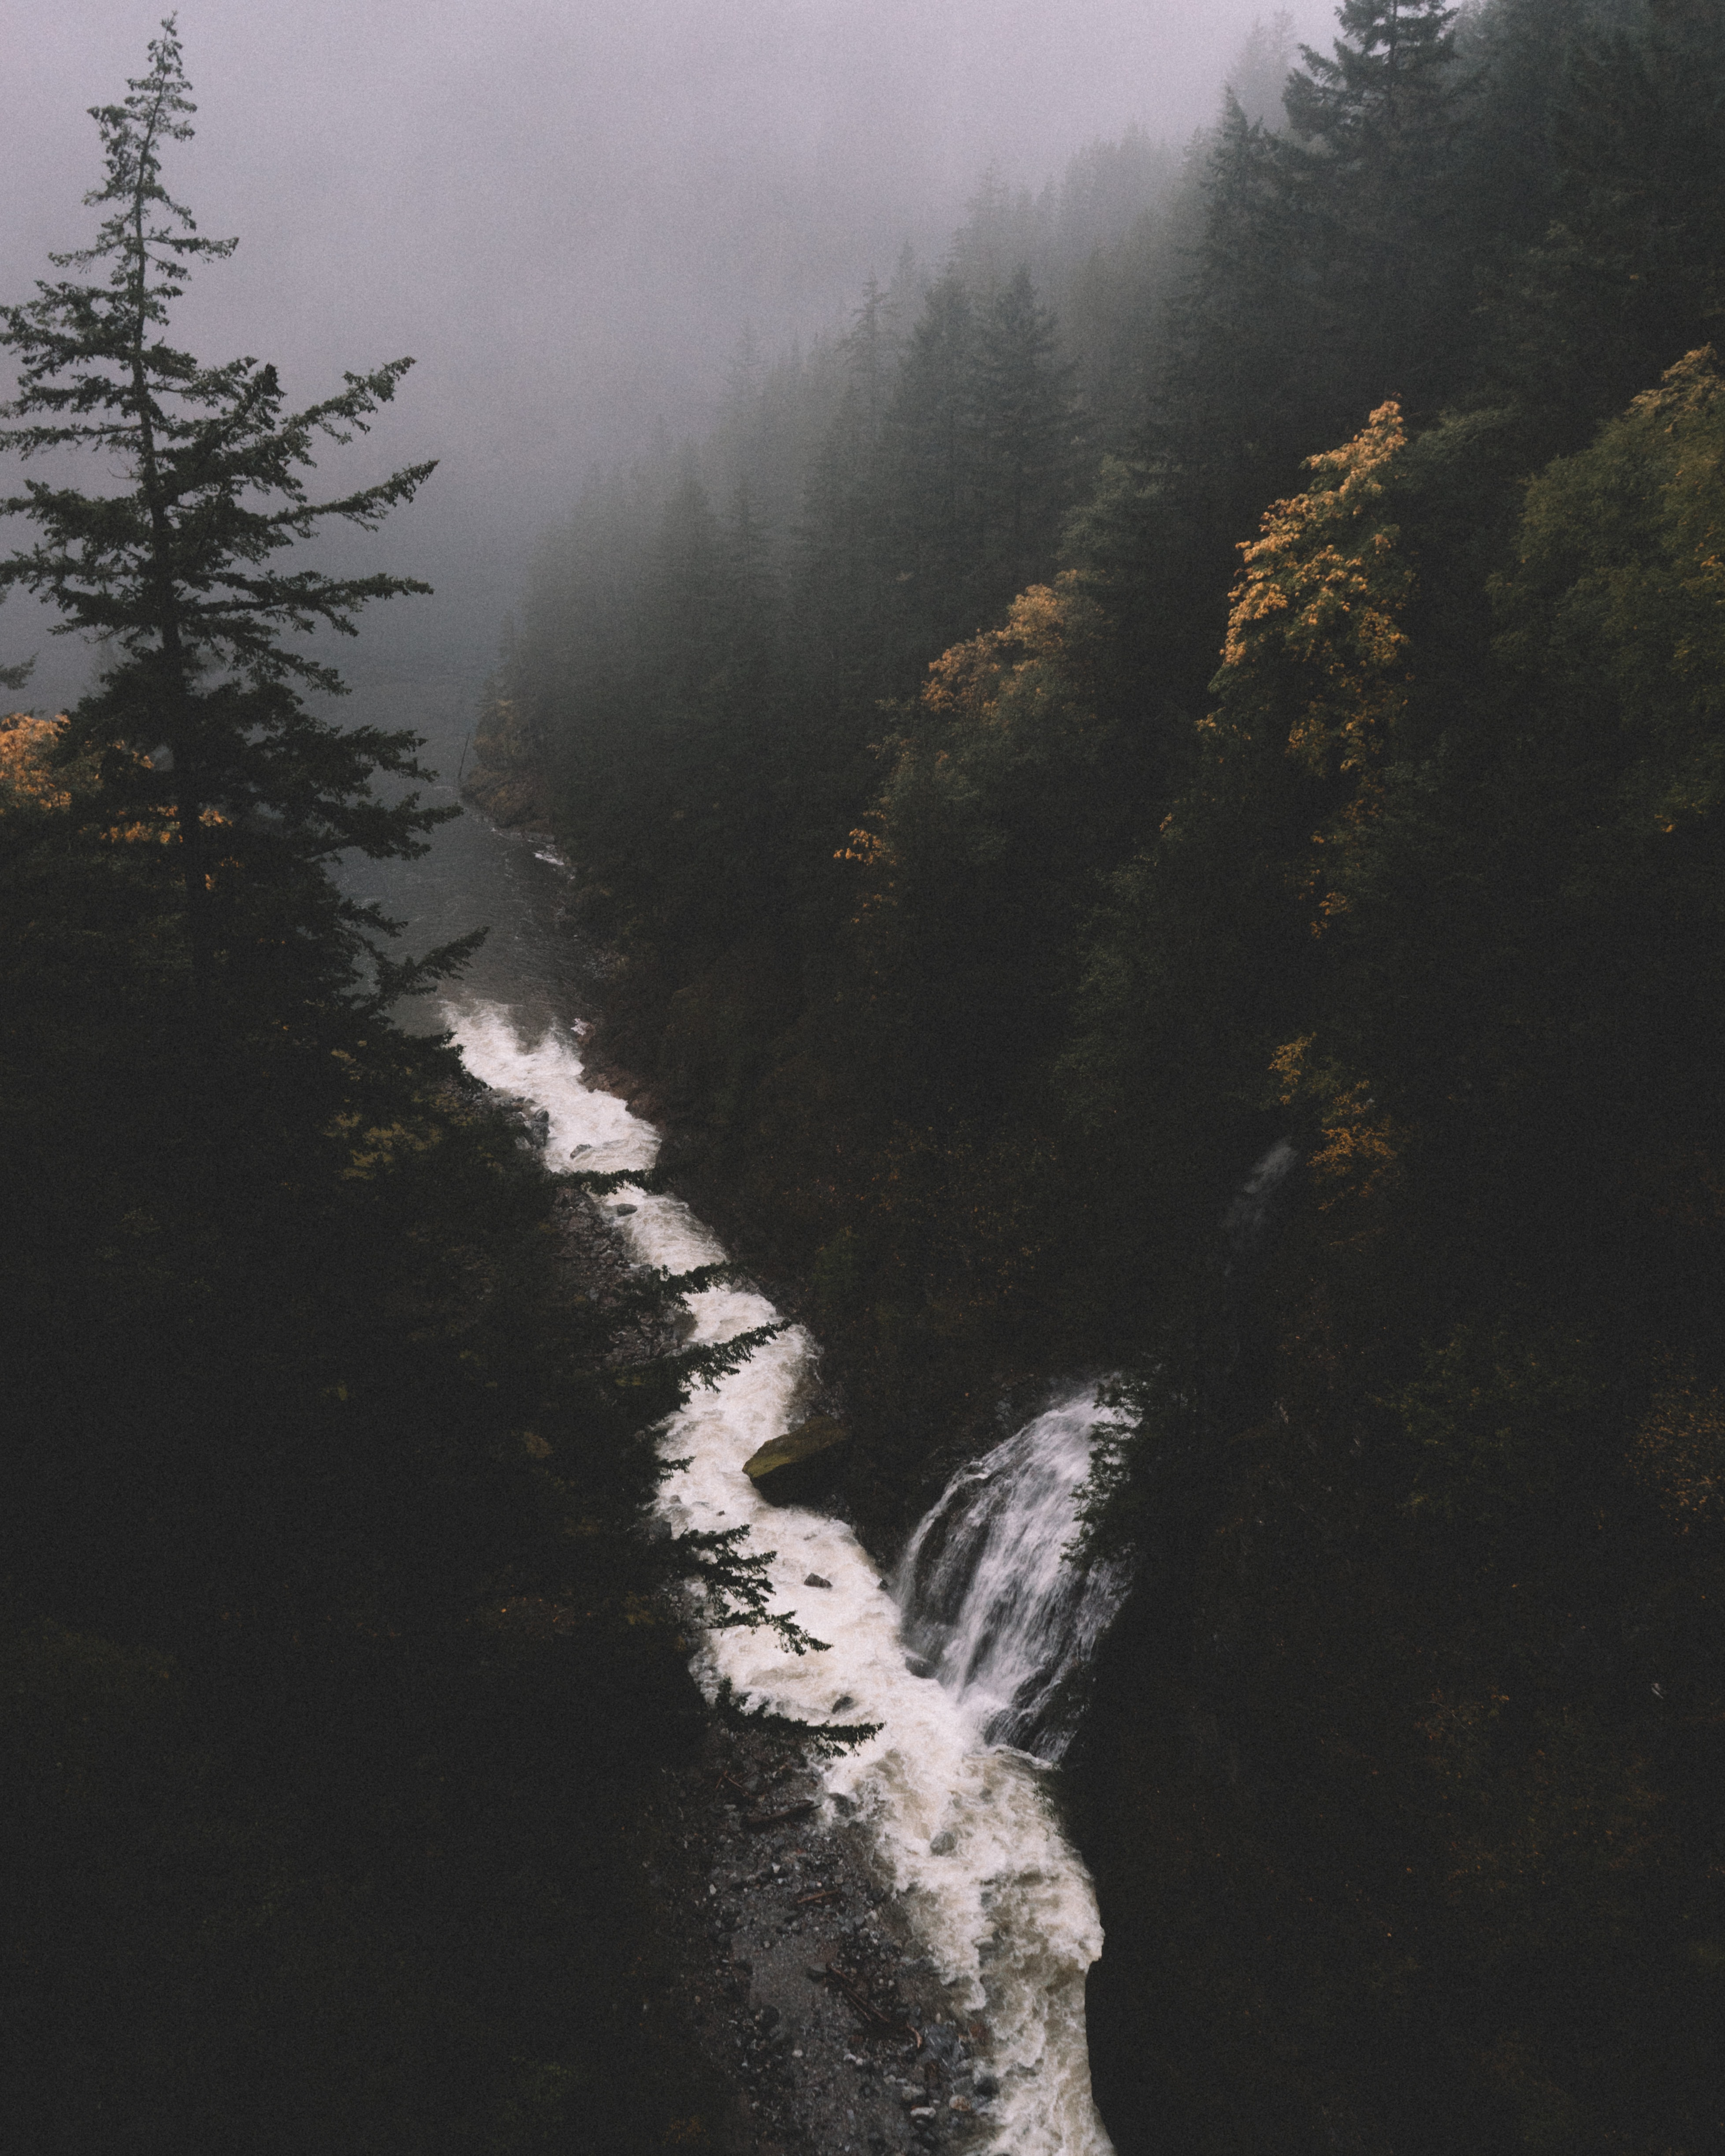 A drone shot of a waterfall tumbling down into a stream in a forest